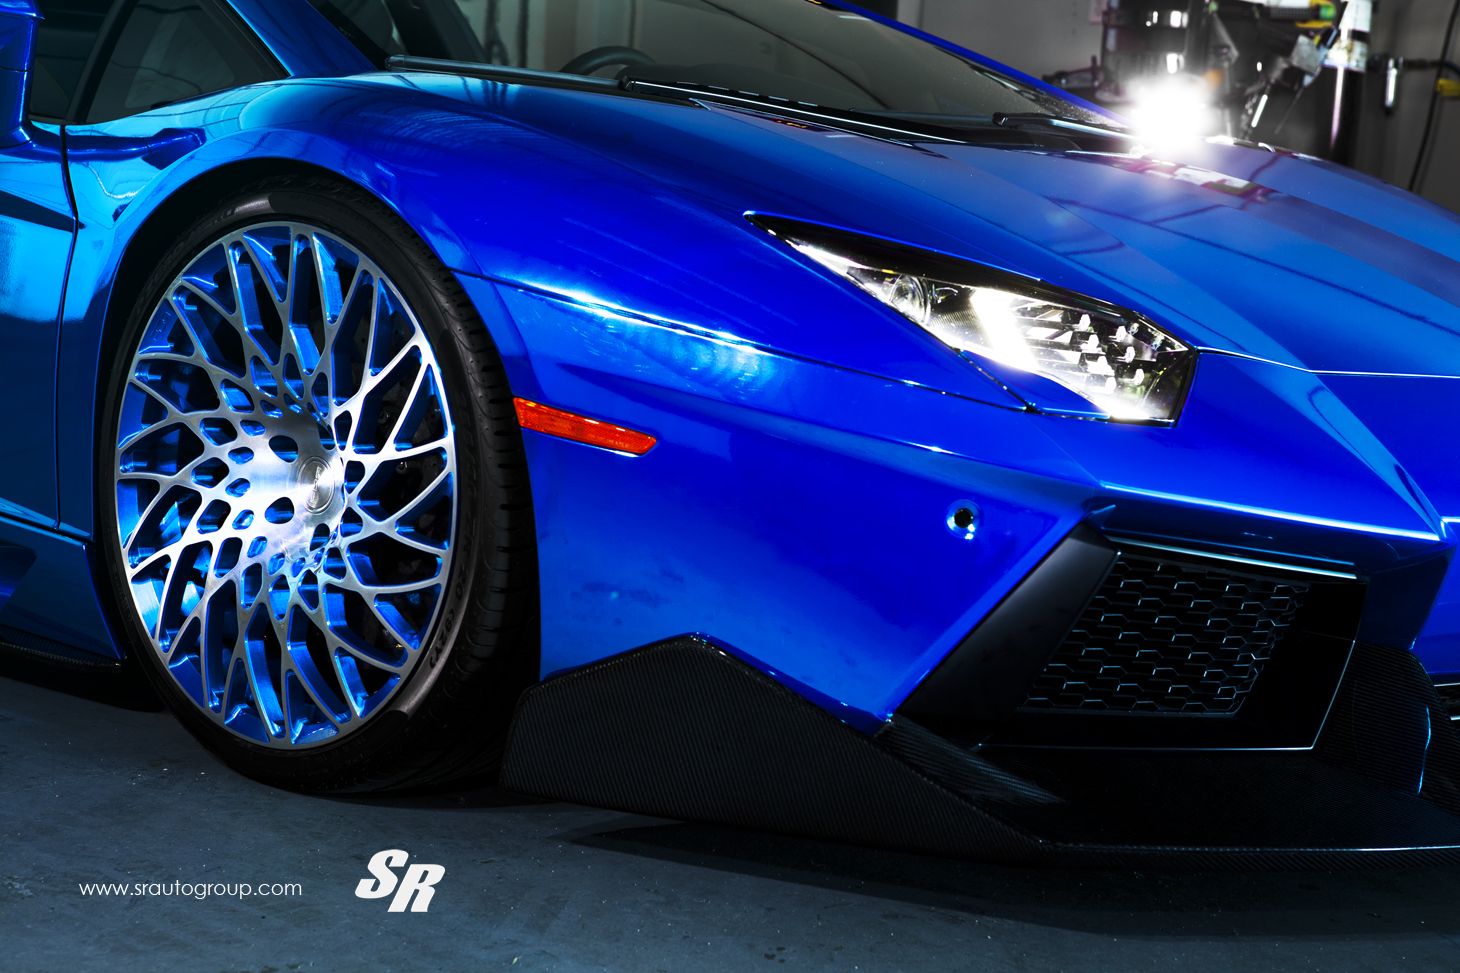 Electric Blue Aventador Gets Outrageous Pur Disc Style Alloys